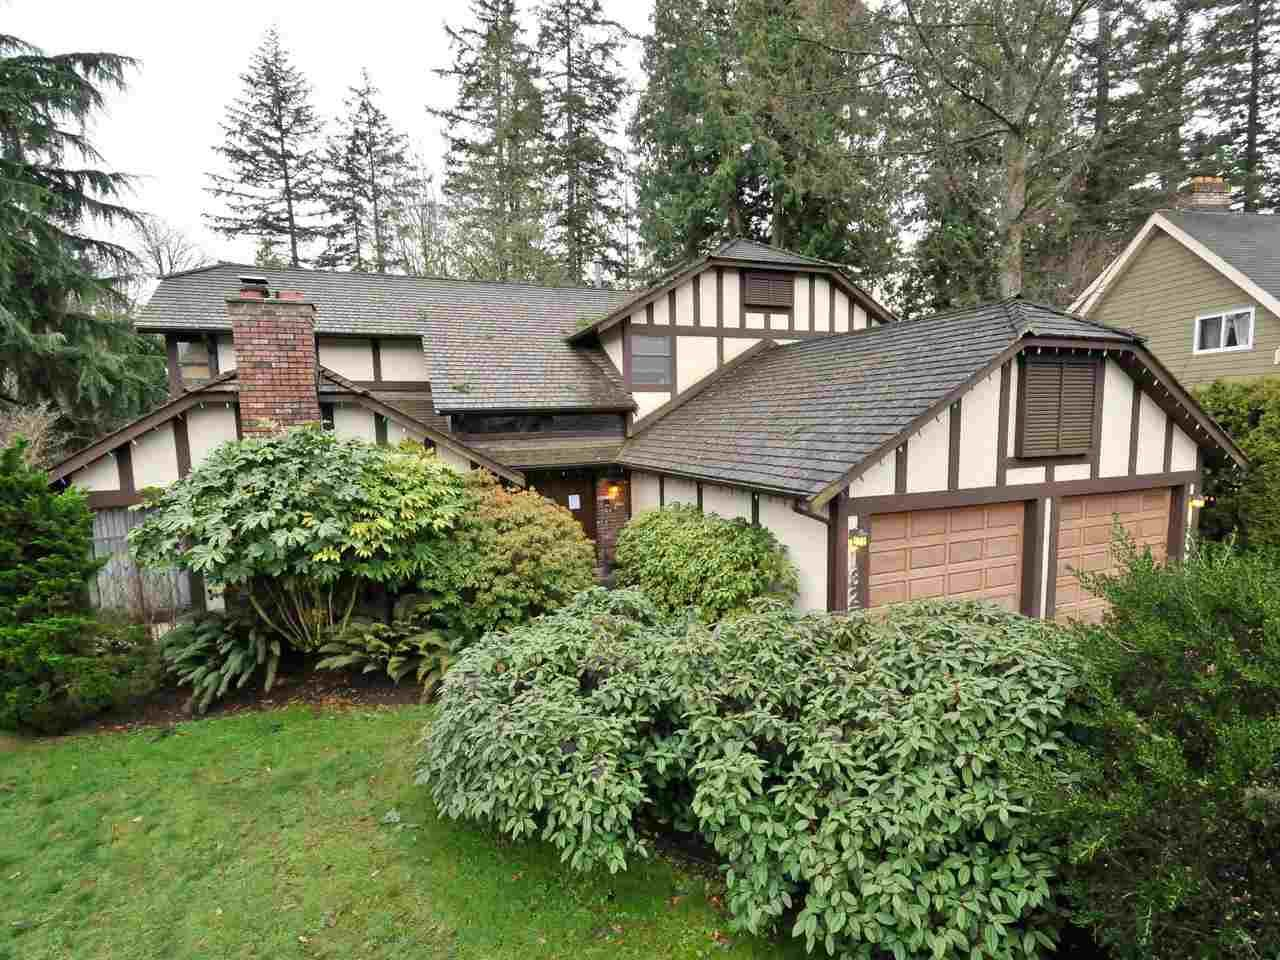 """Main Photo: 13270 AMBLE GREENE Court in Surrey: Crescent Bch Ocean Pk. House for sale in """"Amble Greene"""" (South Surrey White Rock)  : MLS®# R2330678"""